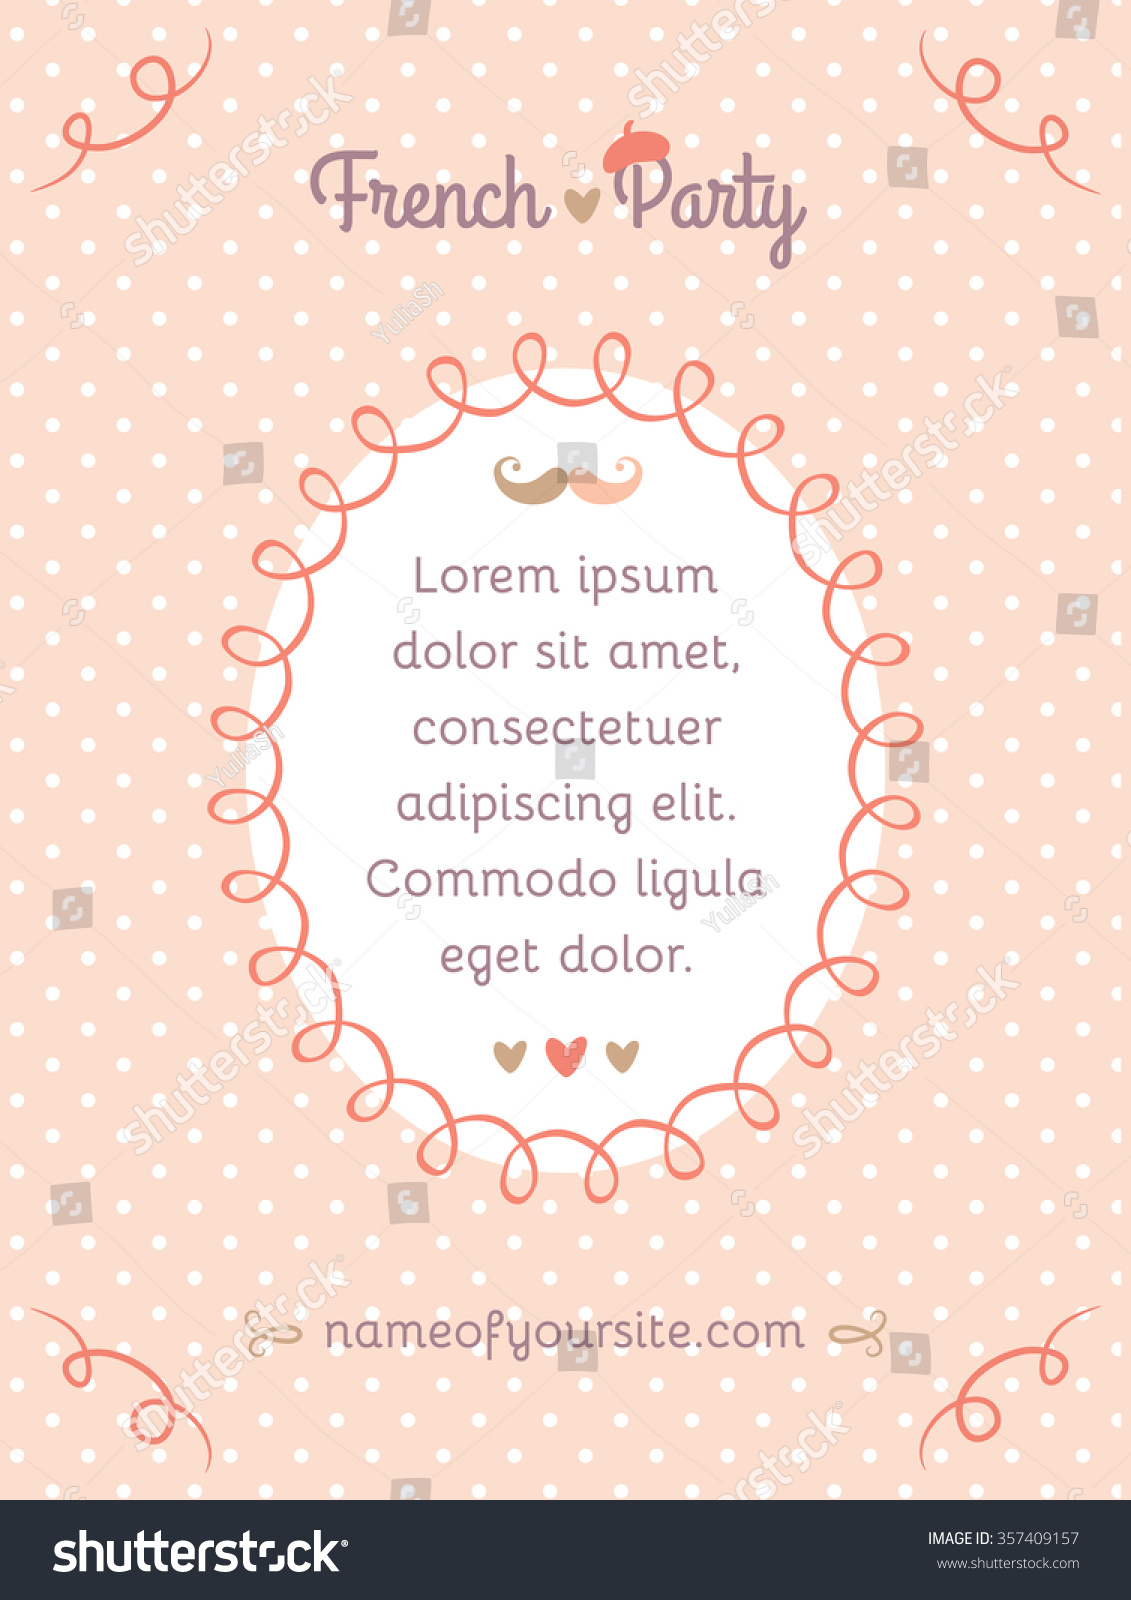 Greeting polka dot feminine vertical banner stock vector 357409157 greeting polka dot feminine vertical banner with frame for text invitation card for french party stopboris Image collections